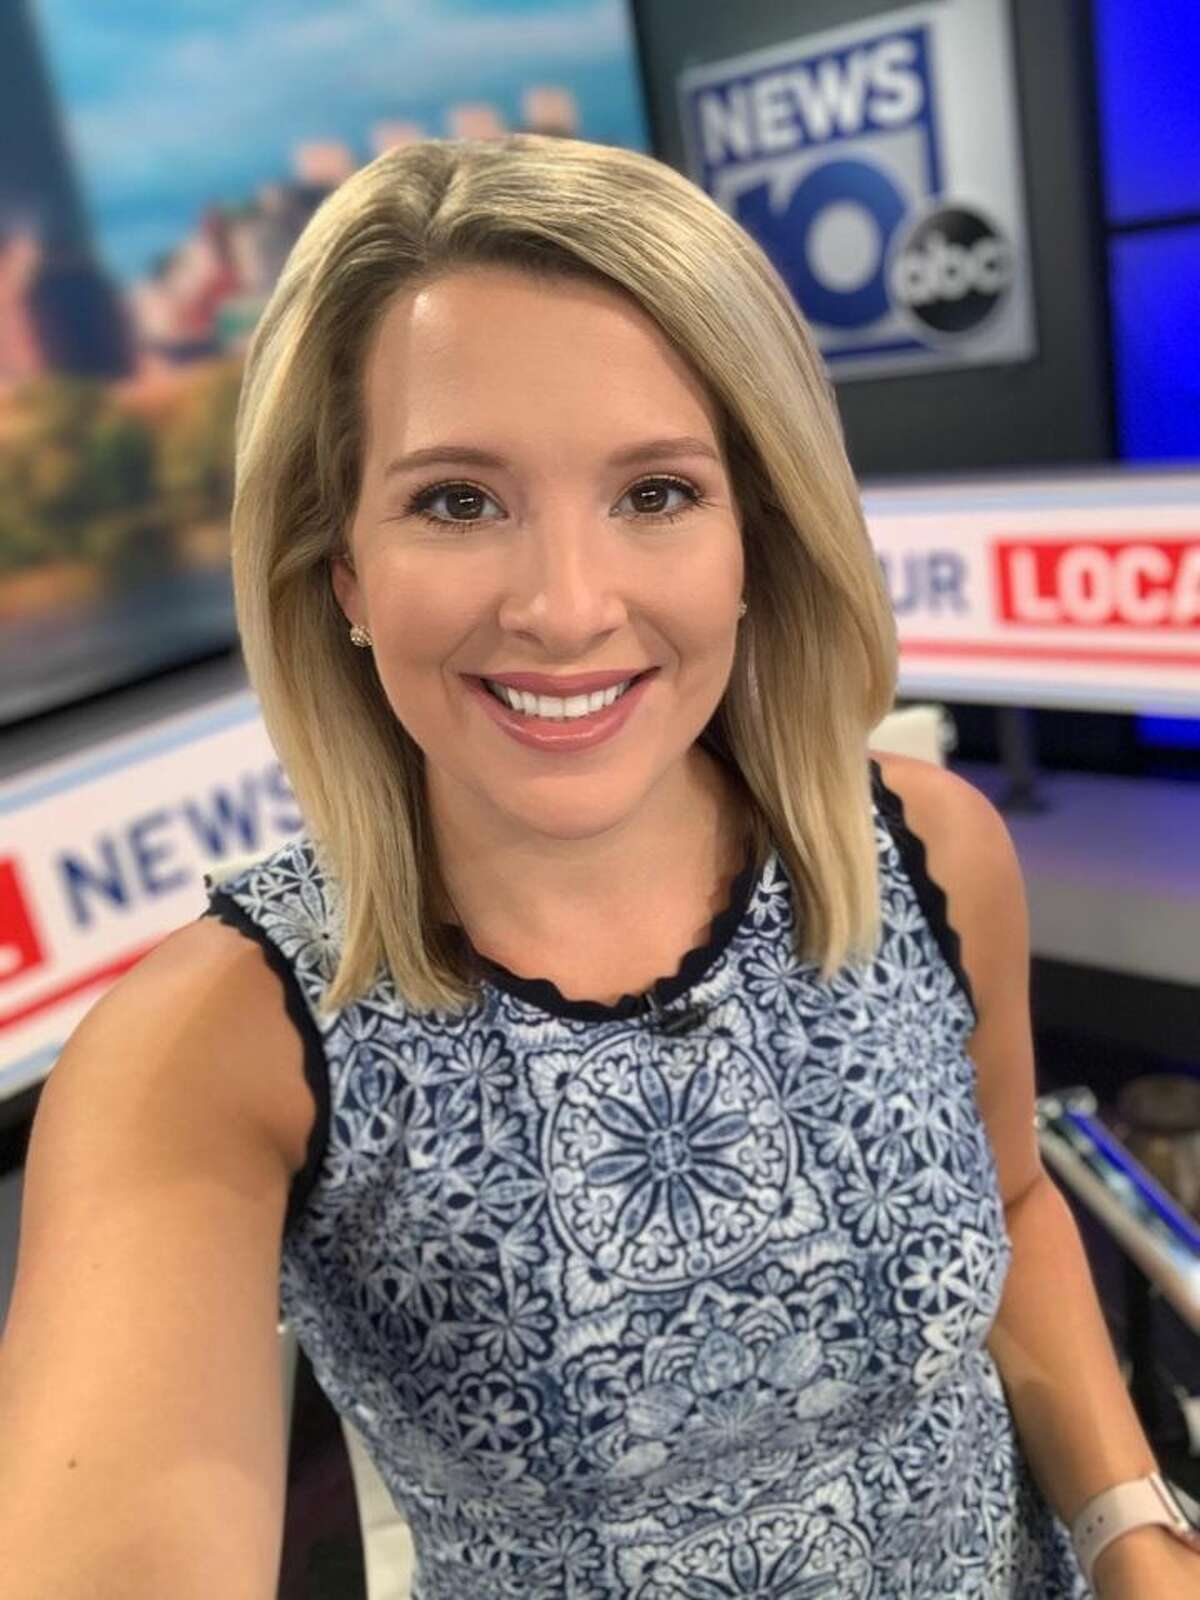 Scroll through the slideshow for 20 things you don't know about Mary Wilson - the new weekday morning anchor at News10 ABC.